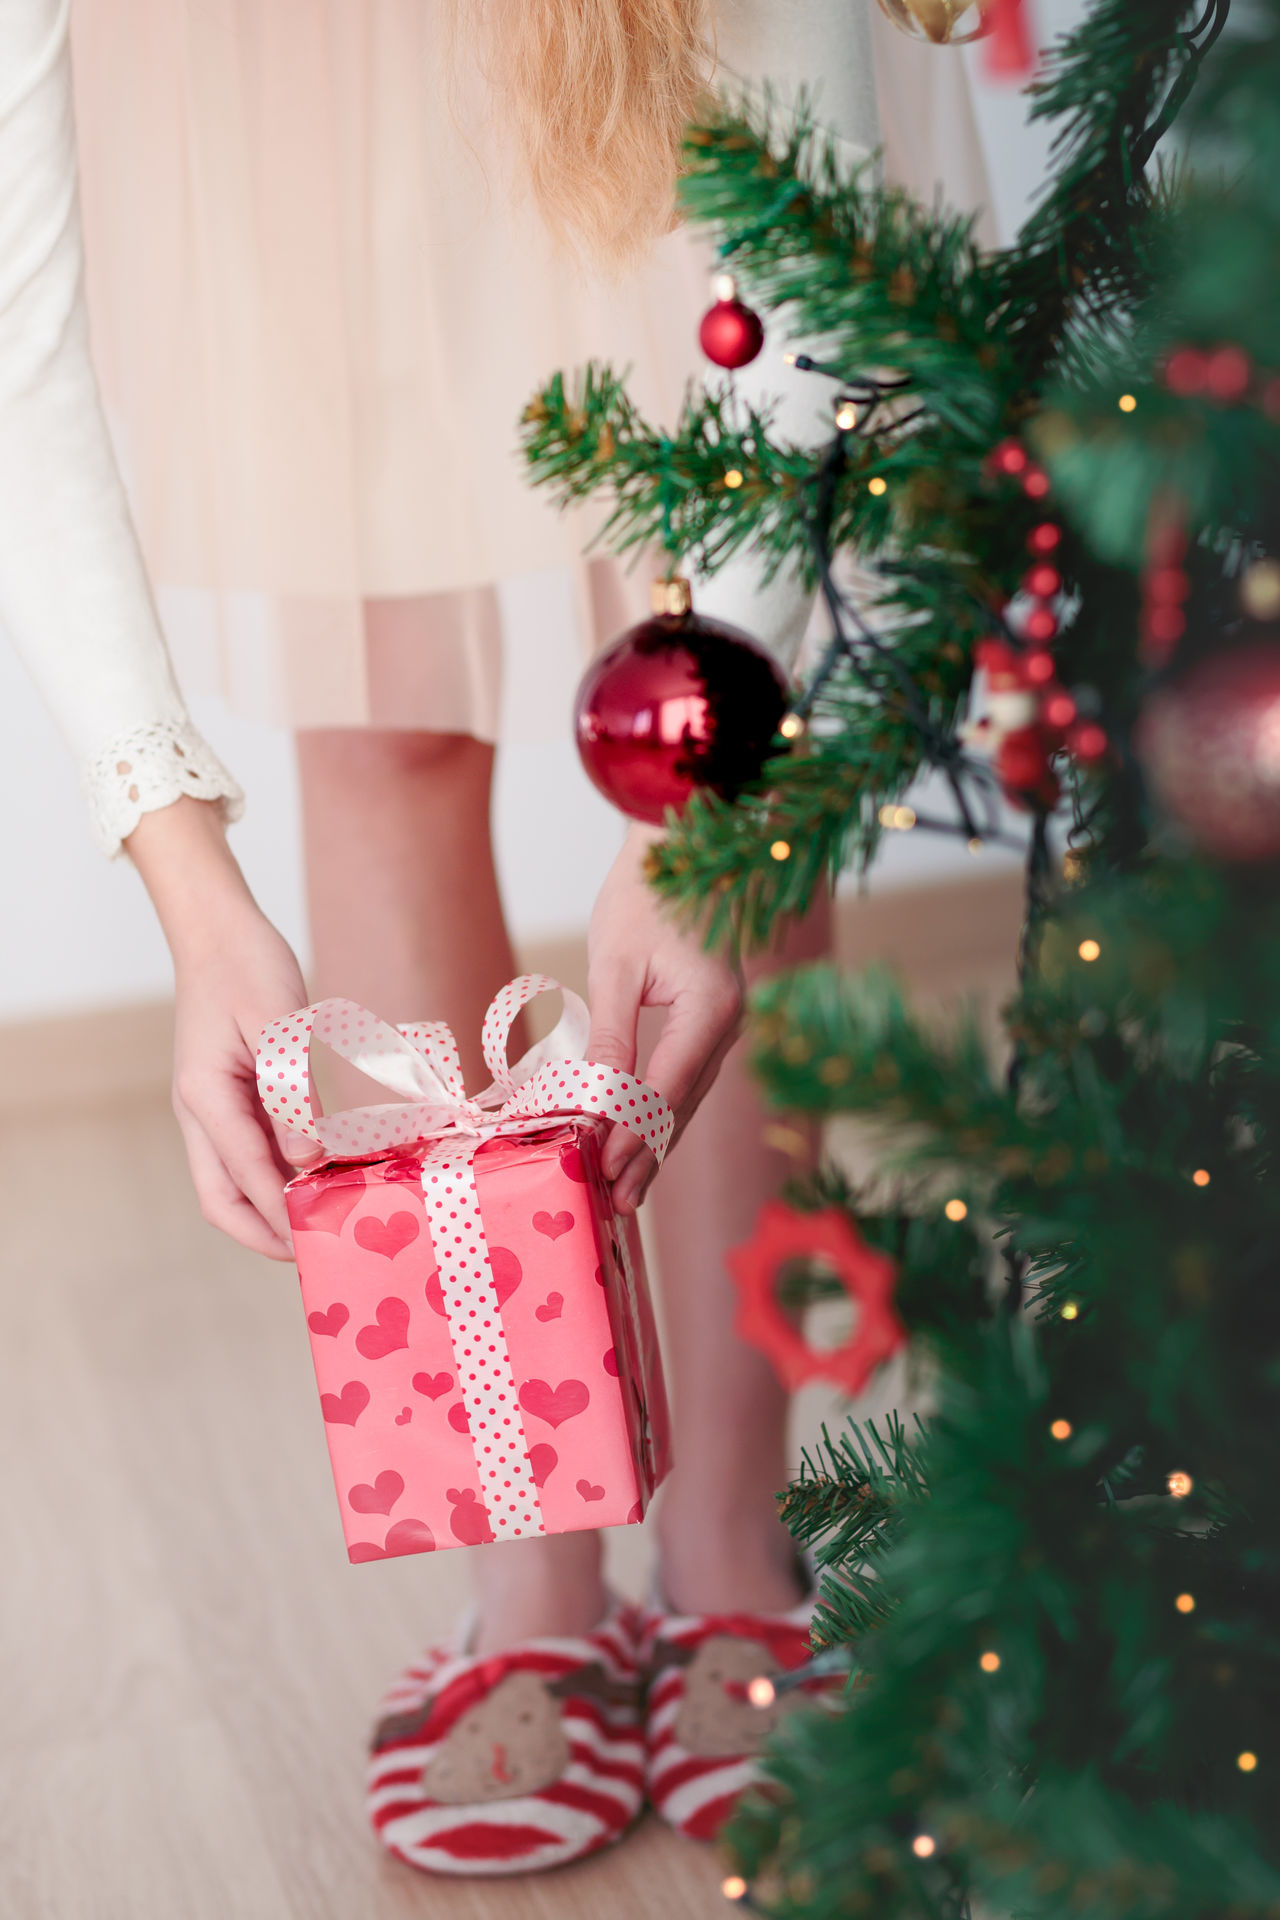 Closeup of girl getting Christmas gift from under a tree Celebrating Celebration Child Childhood Christmas Christmastime Decorated Dress Gift Girl Holding Holiday Home Light Person Present Red Tree Vertical Wrapped Young